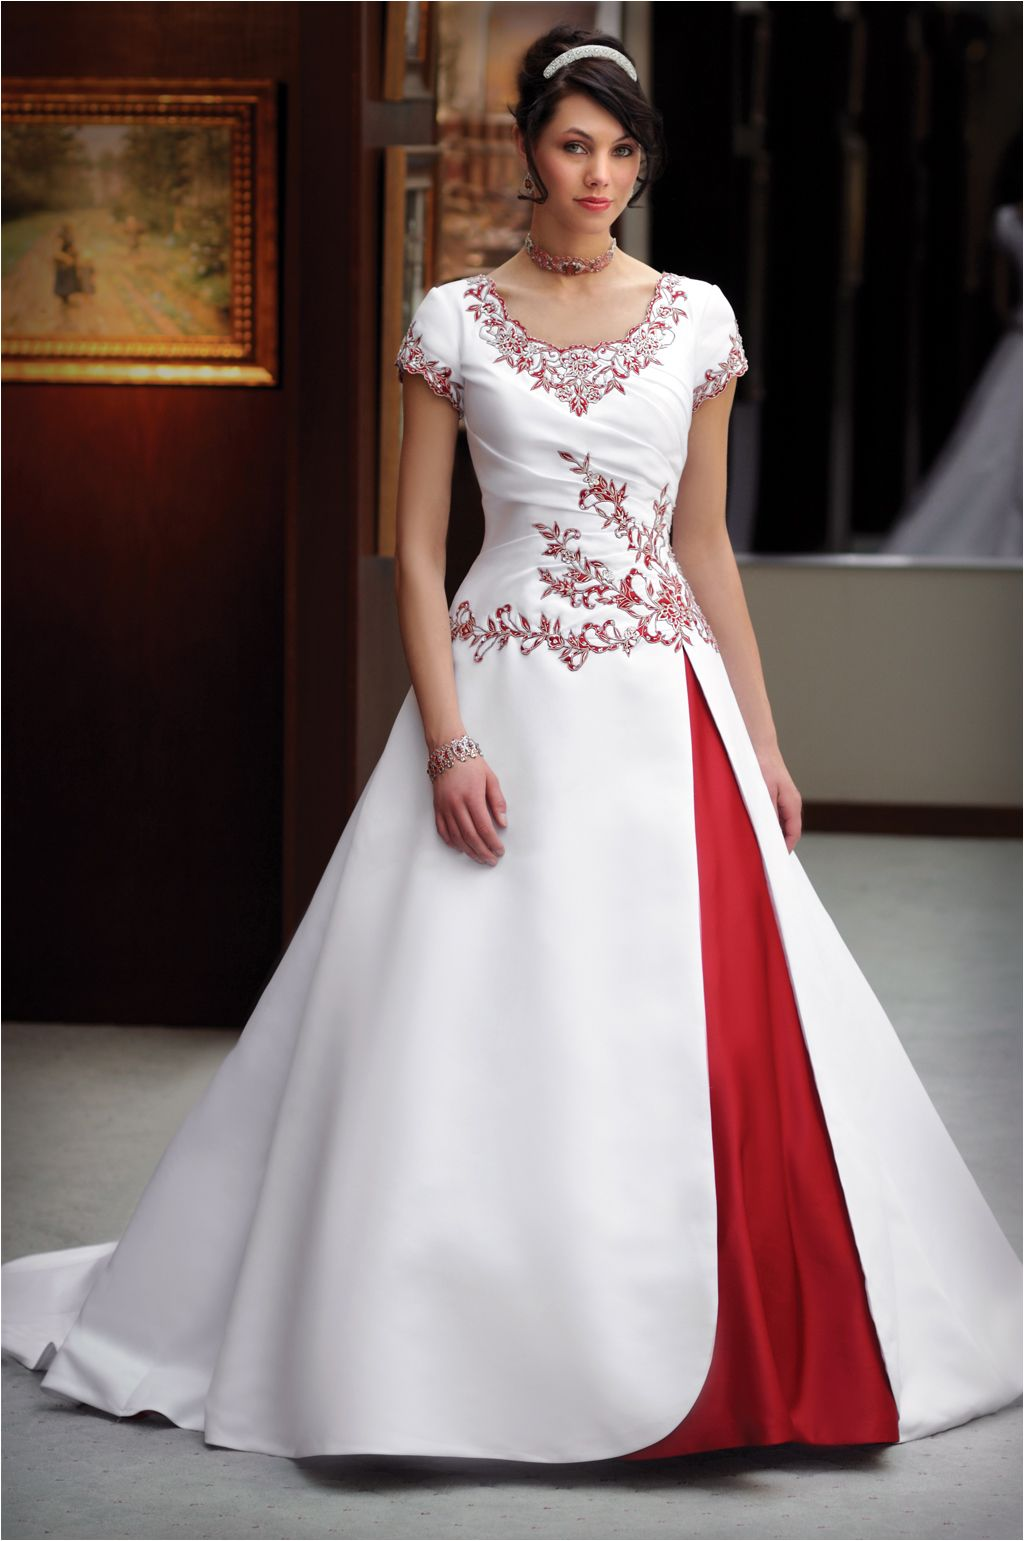 white gown with dramatic red accents | colored wedding